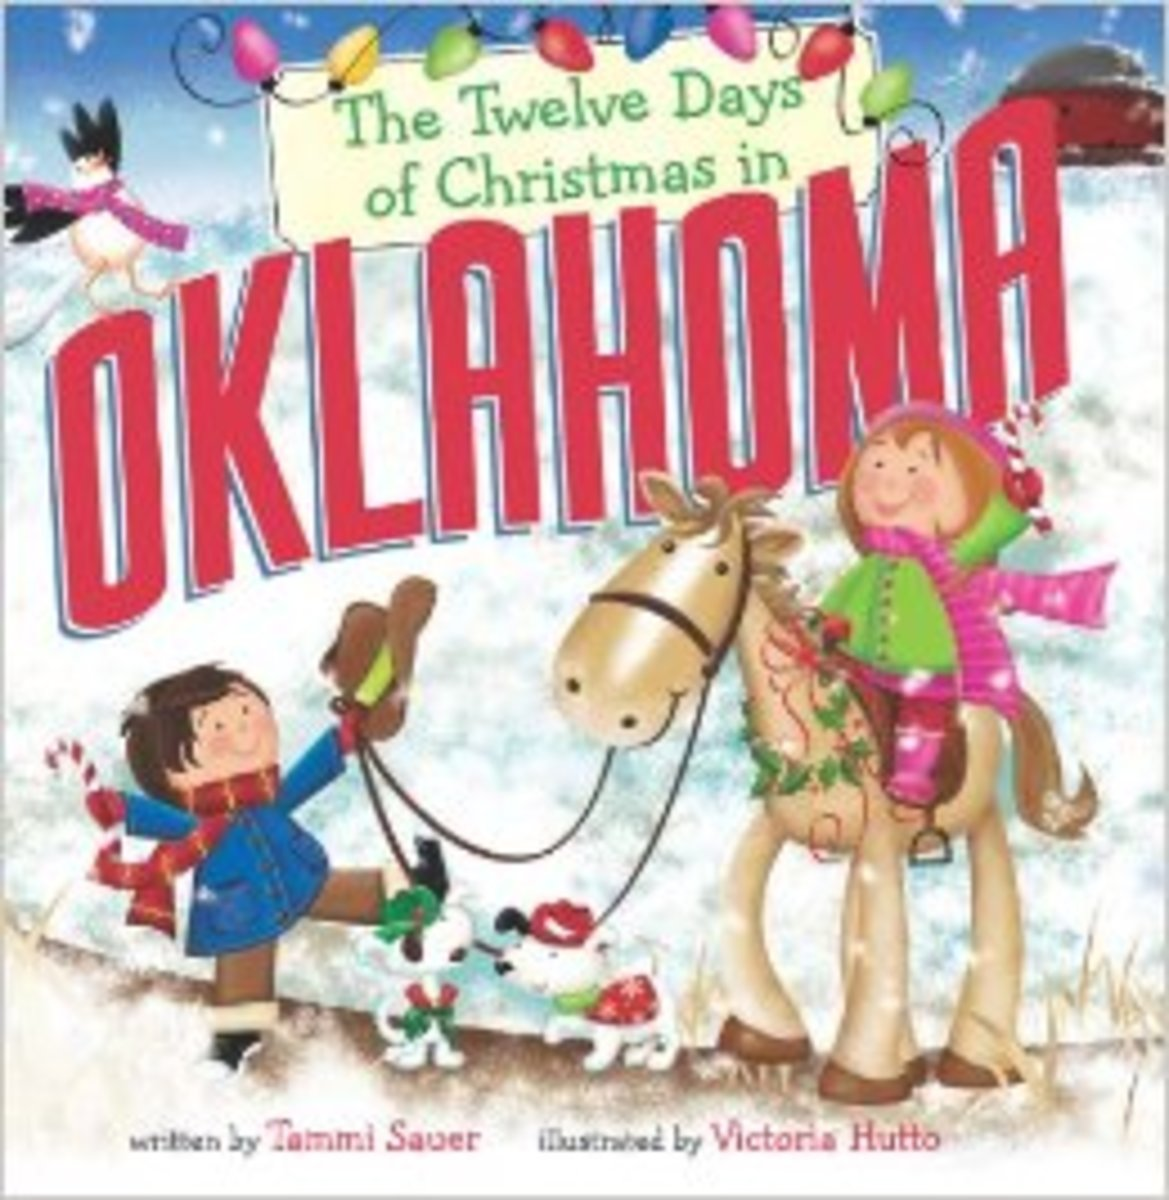 The Twelve Days of Christmas in Oklahoma (The Twelve Days of Christmas in America) by Tammi Sauer - Image is from amazon.com